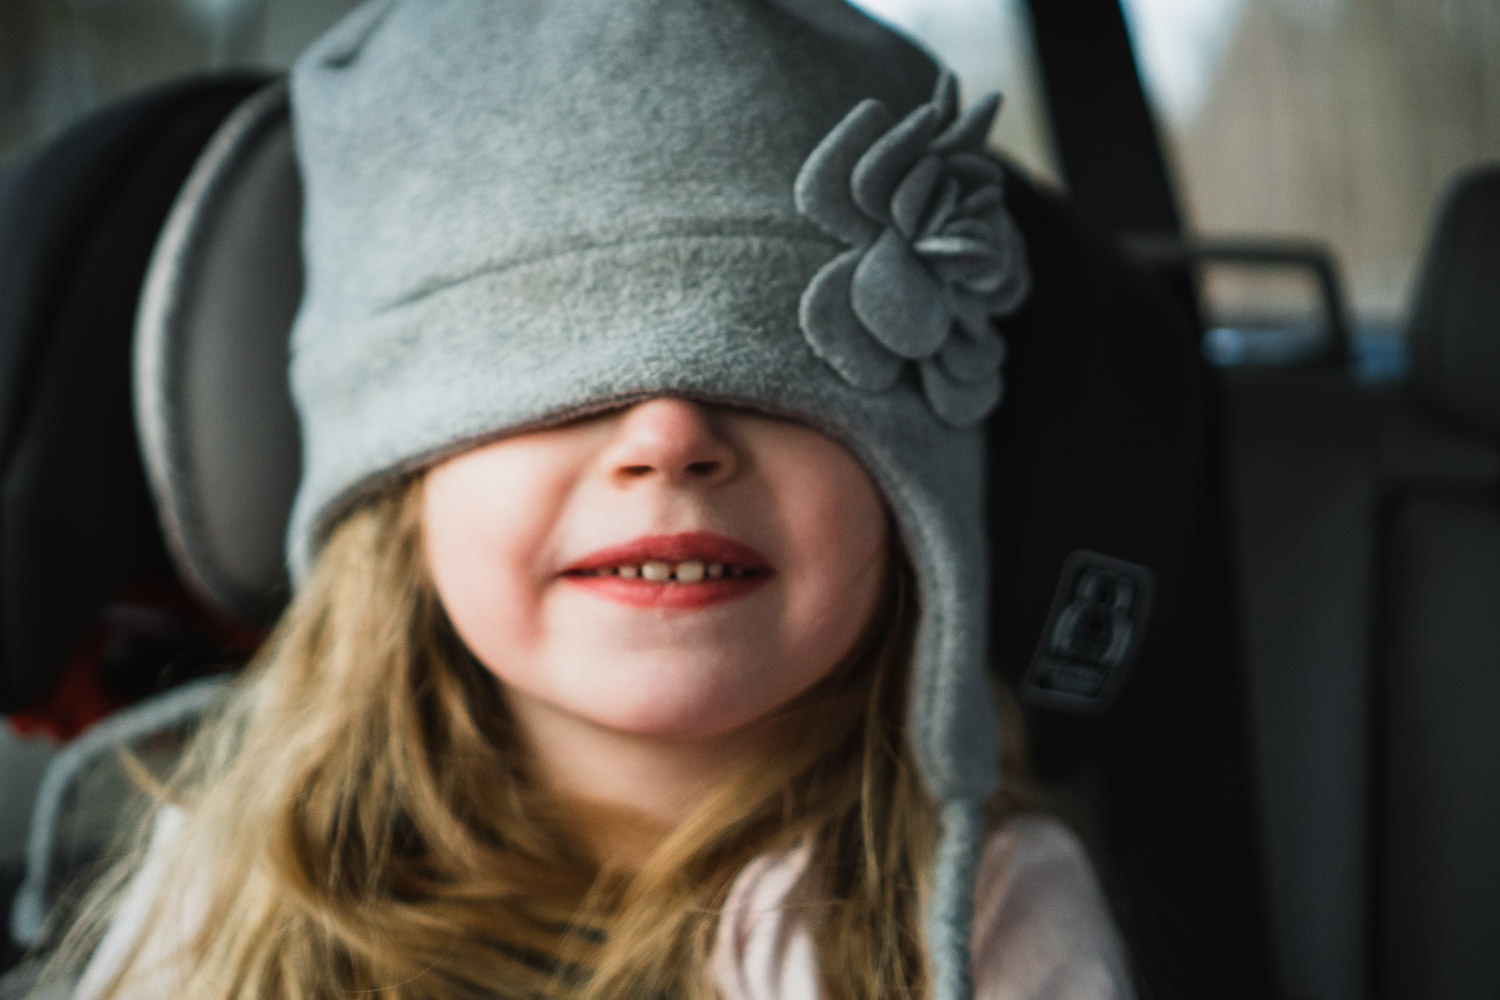 A little girl smiles with her hat pulled over her eyes.